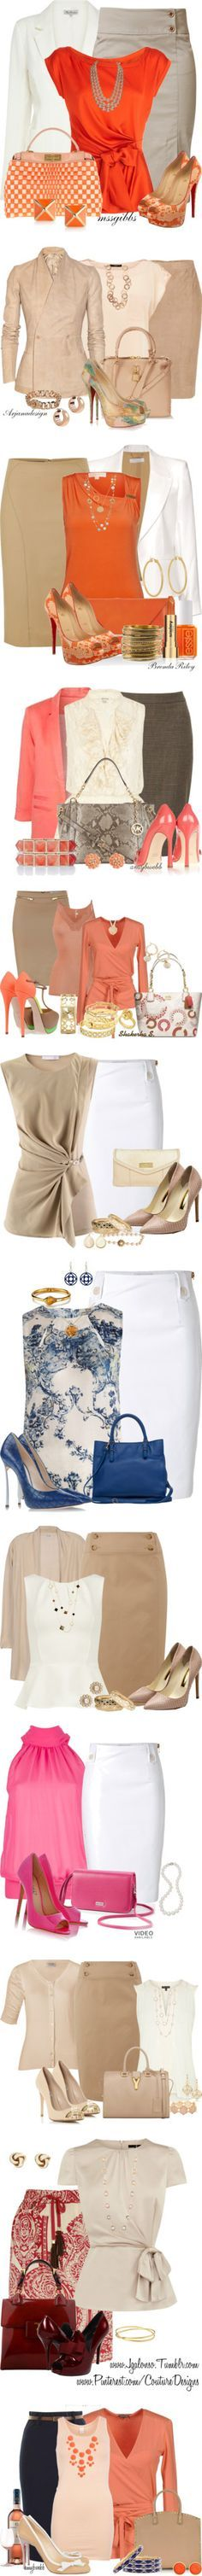 """Outfit ideas for a spring, work appropriate look #spring #fashion #work """"Office In The Spring"""" by esha2001 ❤ liked on Polyvore"""